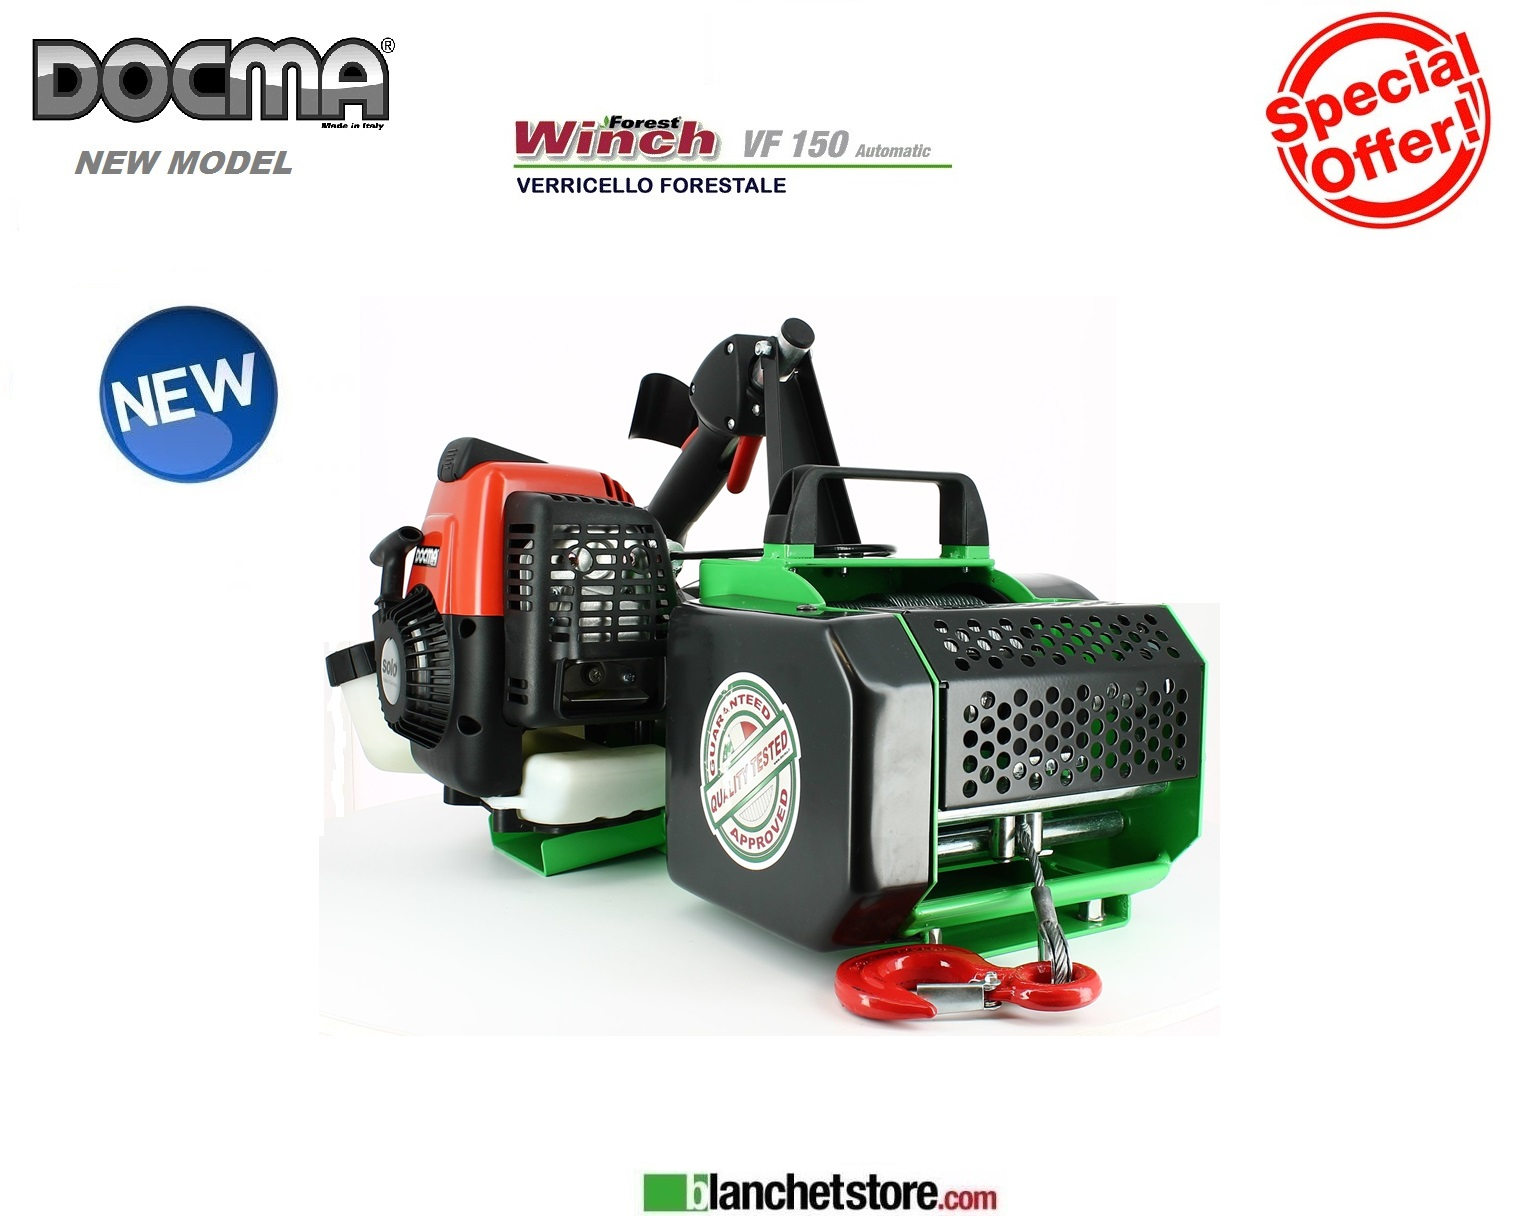 Verricello Forestale Forest Winch Docma VF150 Automatic